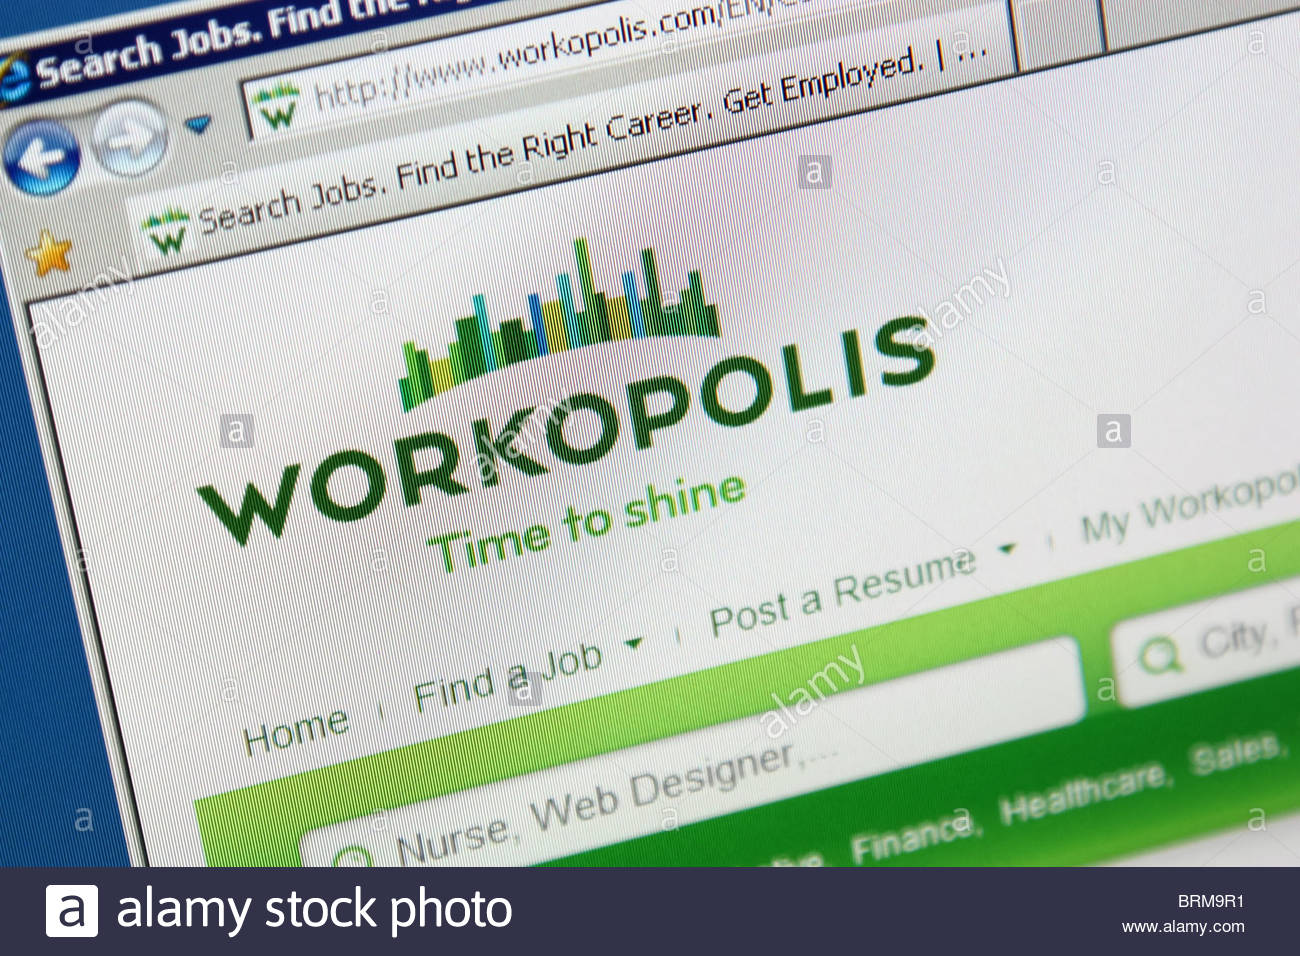 job search website workopolis stock photos images resume brm9r1 roofing foreman Resume Workopolis Resume Search